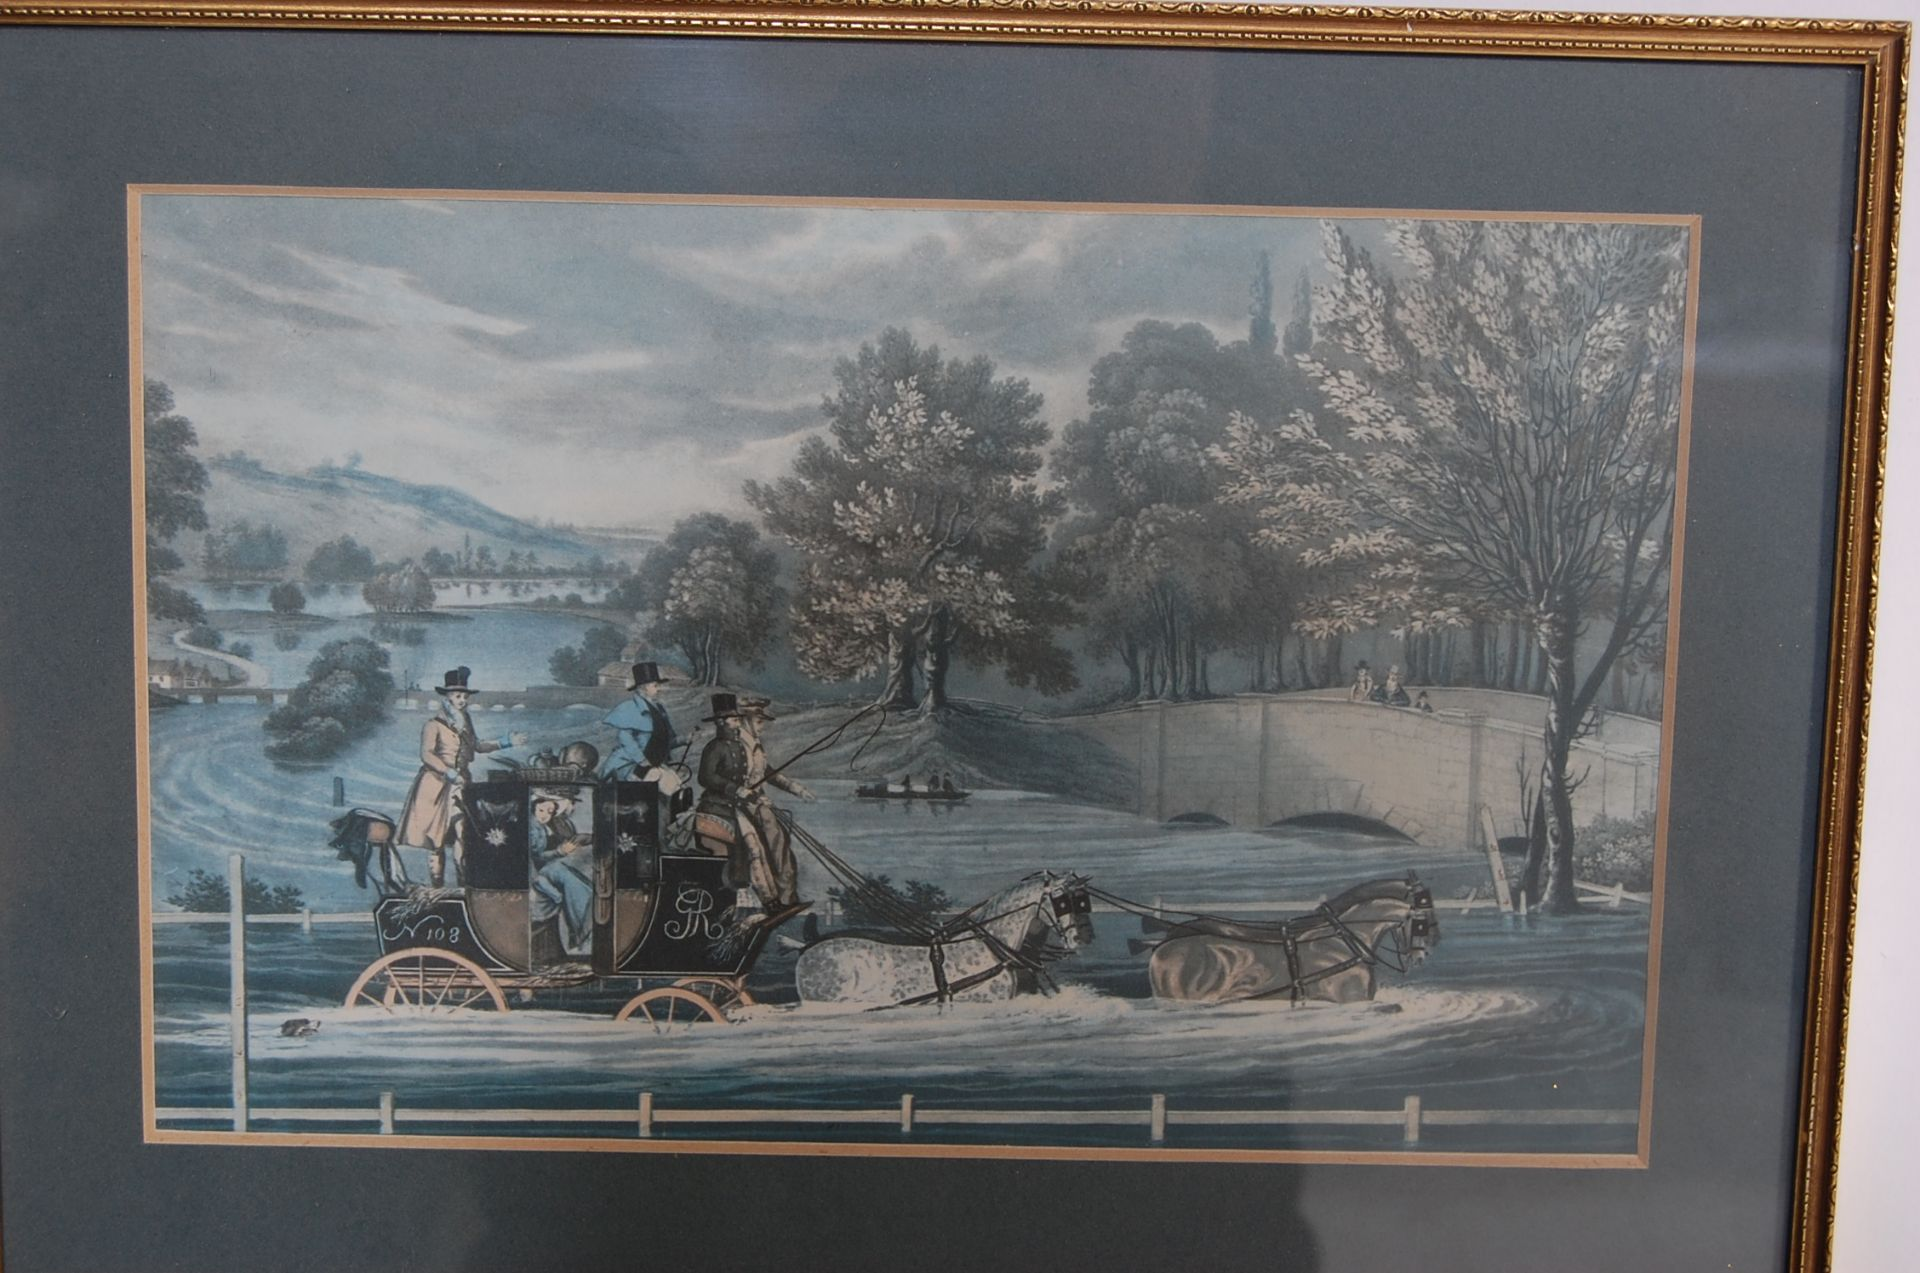 A GROUP OF SEVEN ROYAL MAIL LITHOGRAPH PRINTS DEPICTING 19TH CENTURY ROAYL MAIL COACHES - Image 2 of 13